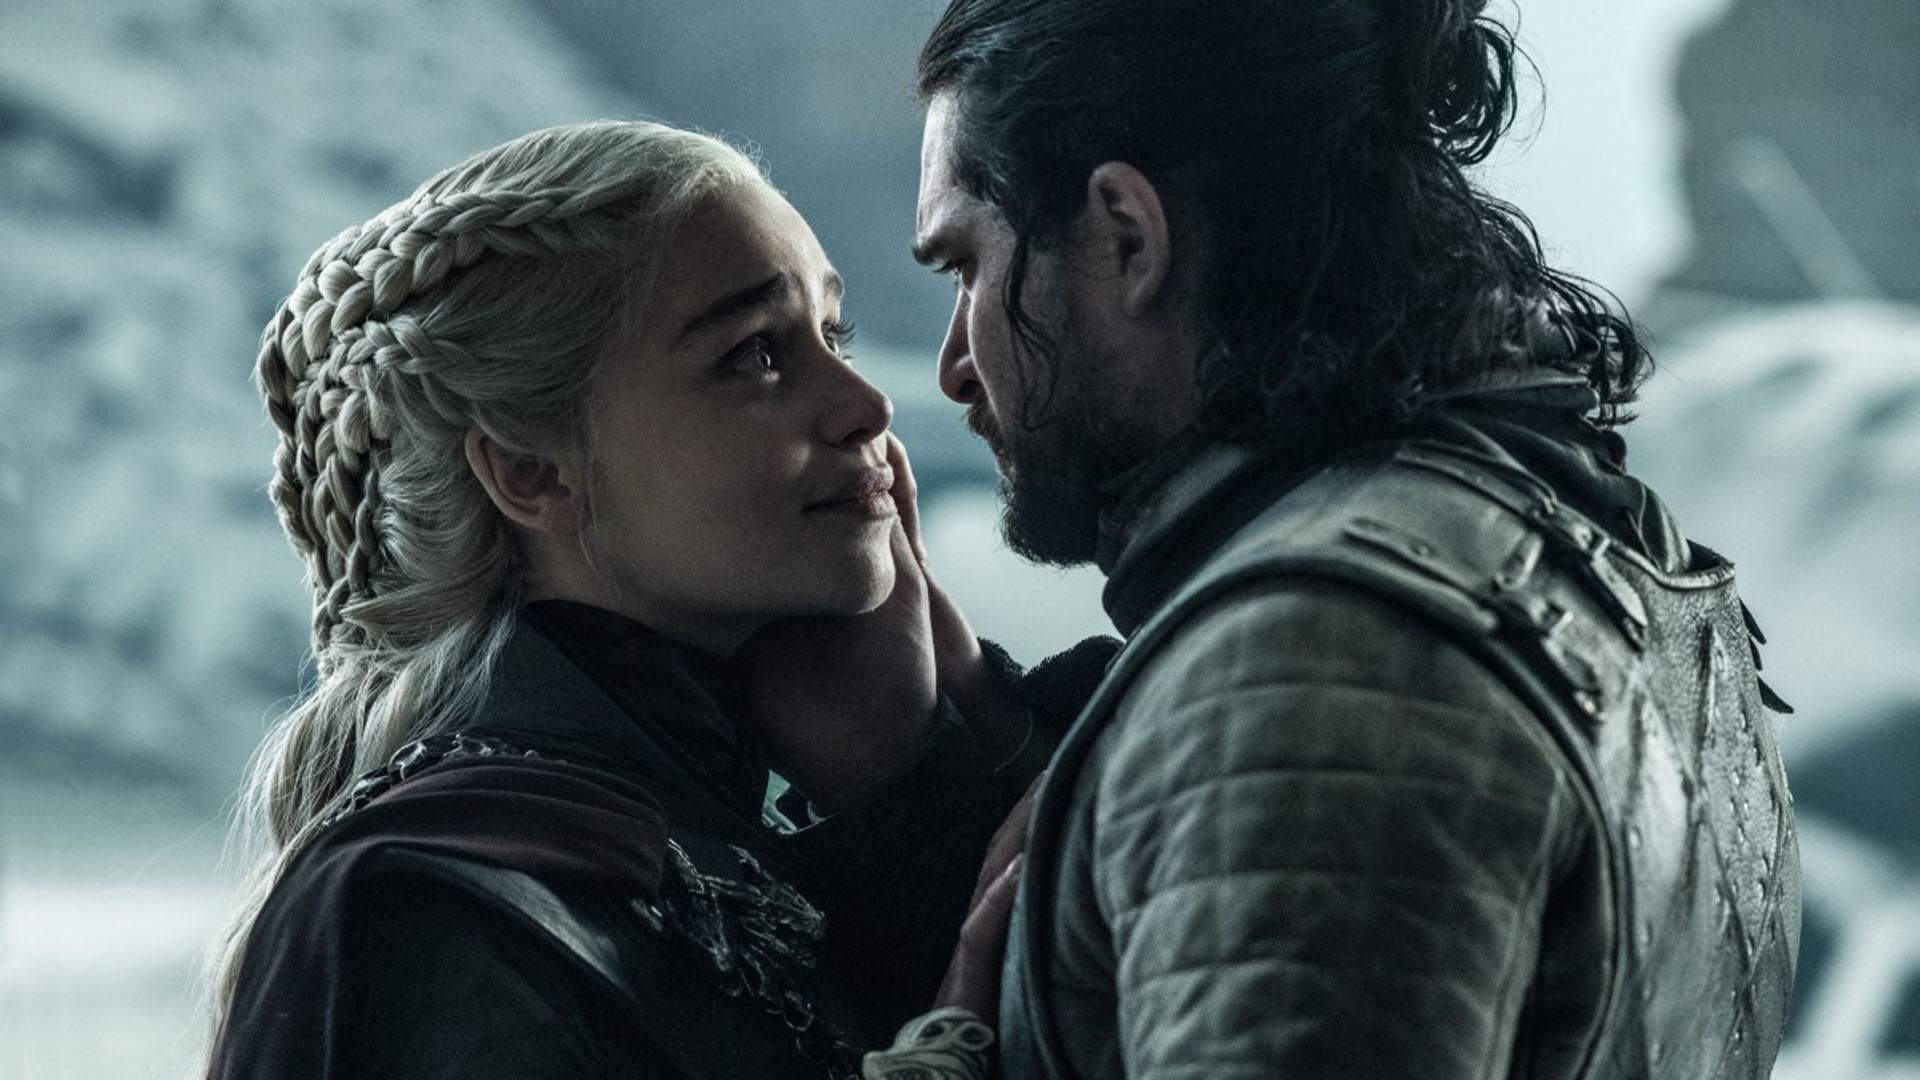 A Second 'Game of Thrones' Prequel Series Is Coming, Focusing On the Targaryens